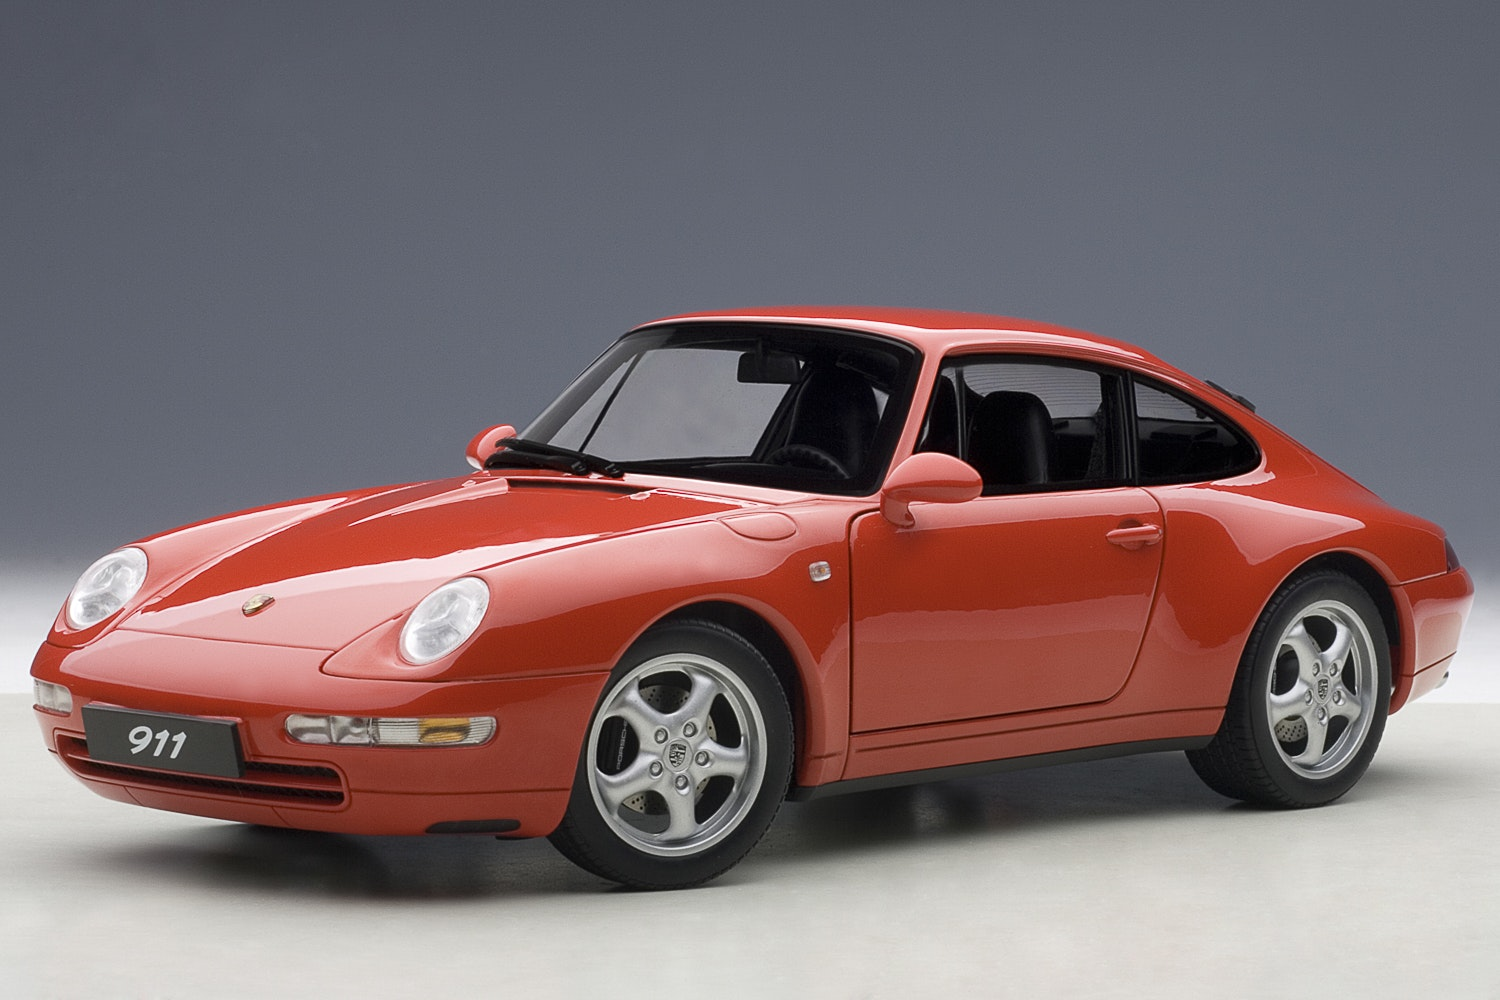 Porsche 993 Carrera 1995, Red